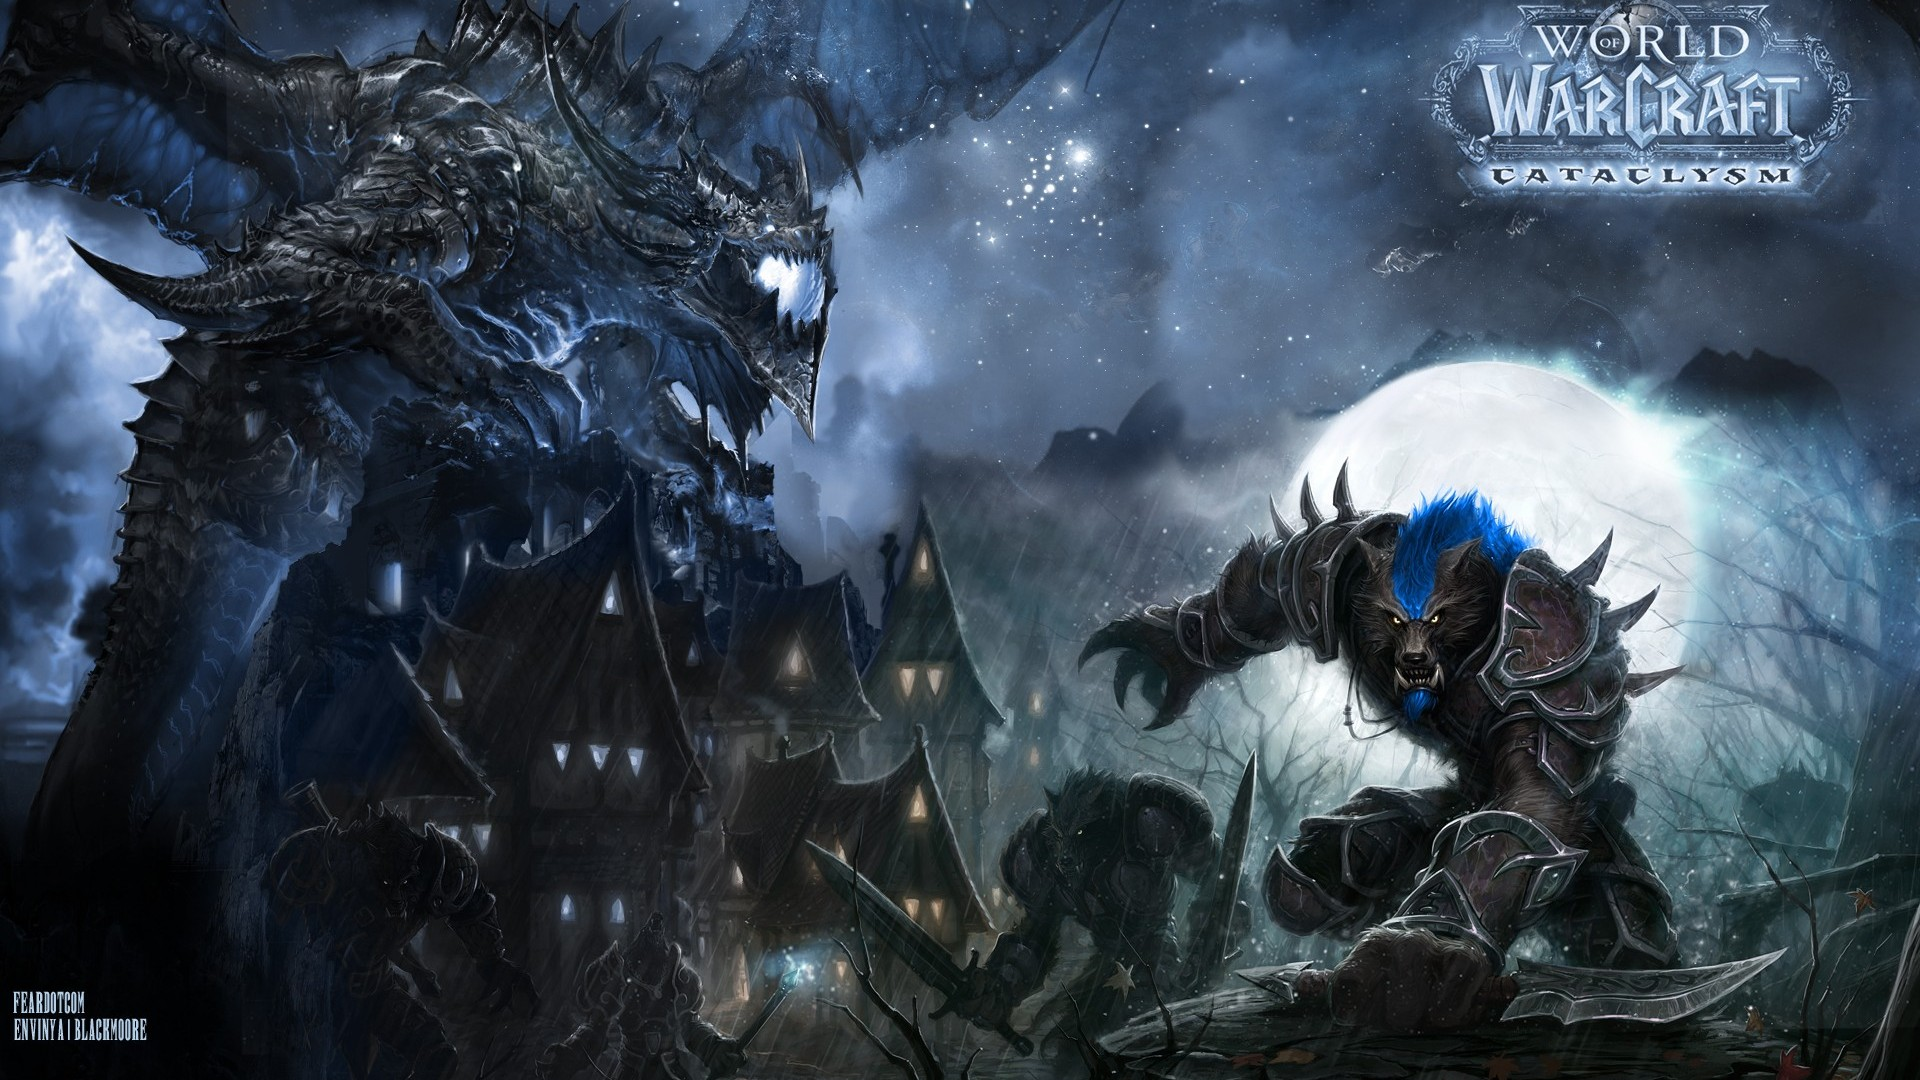 Free Download World Of Warcraft Game Exclusive Hd Wallpapers 2156